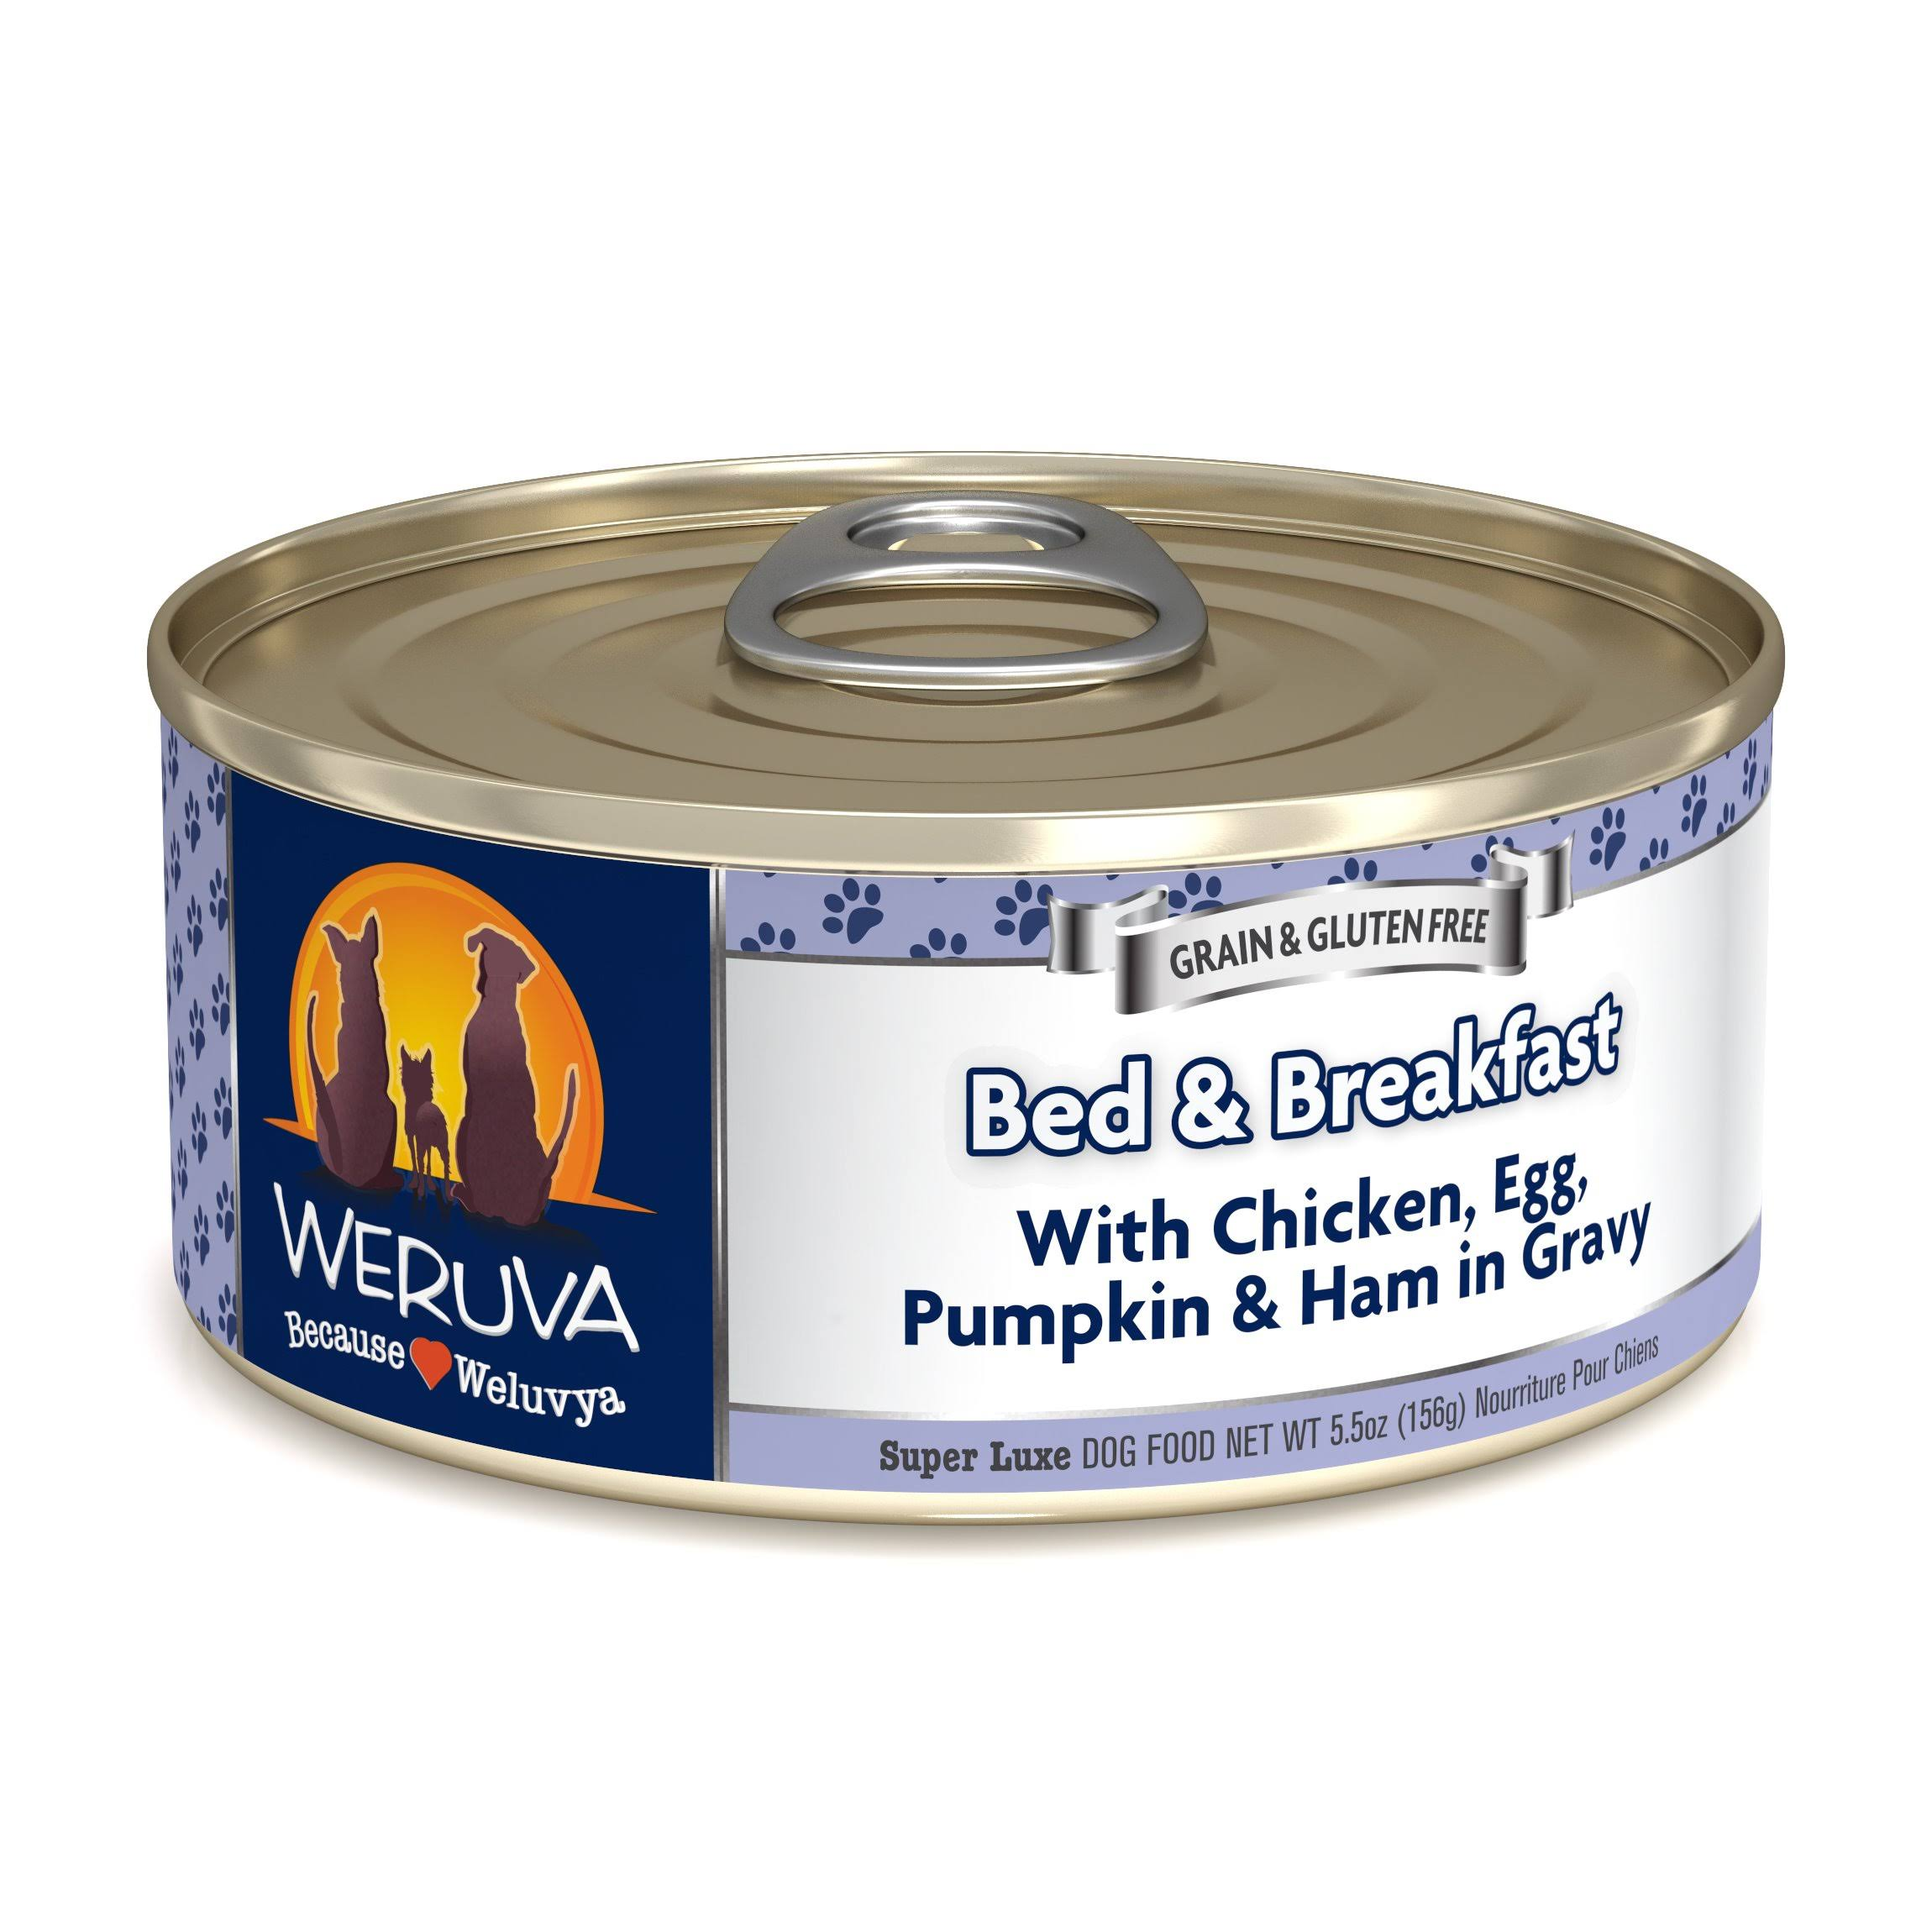 Weruva Bed and Breakfast Dog Food - Chicken, Egg and Pumpkin in Gravy